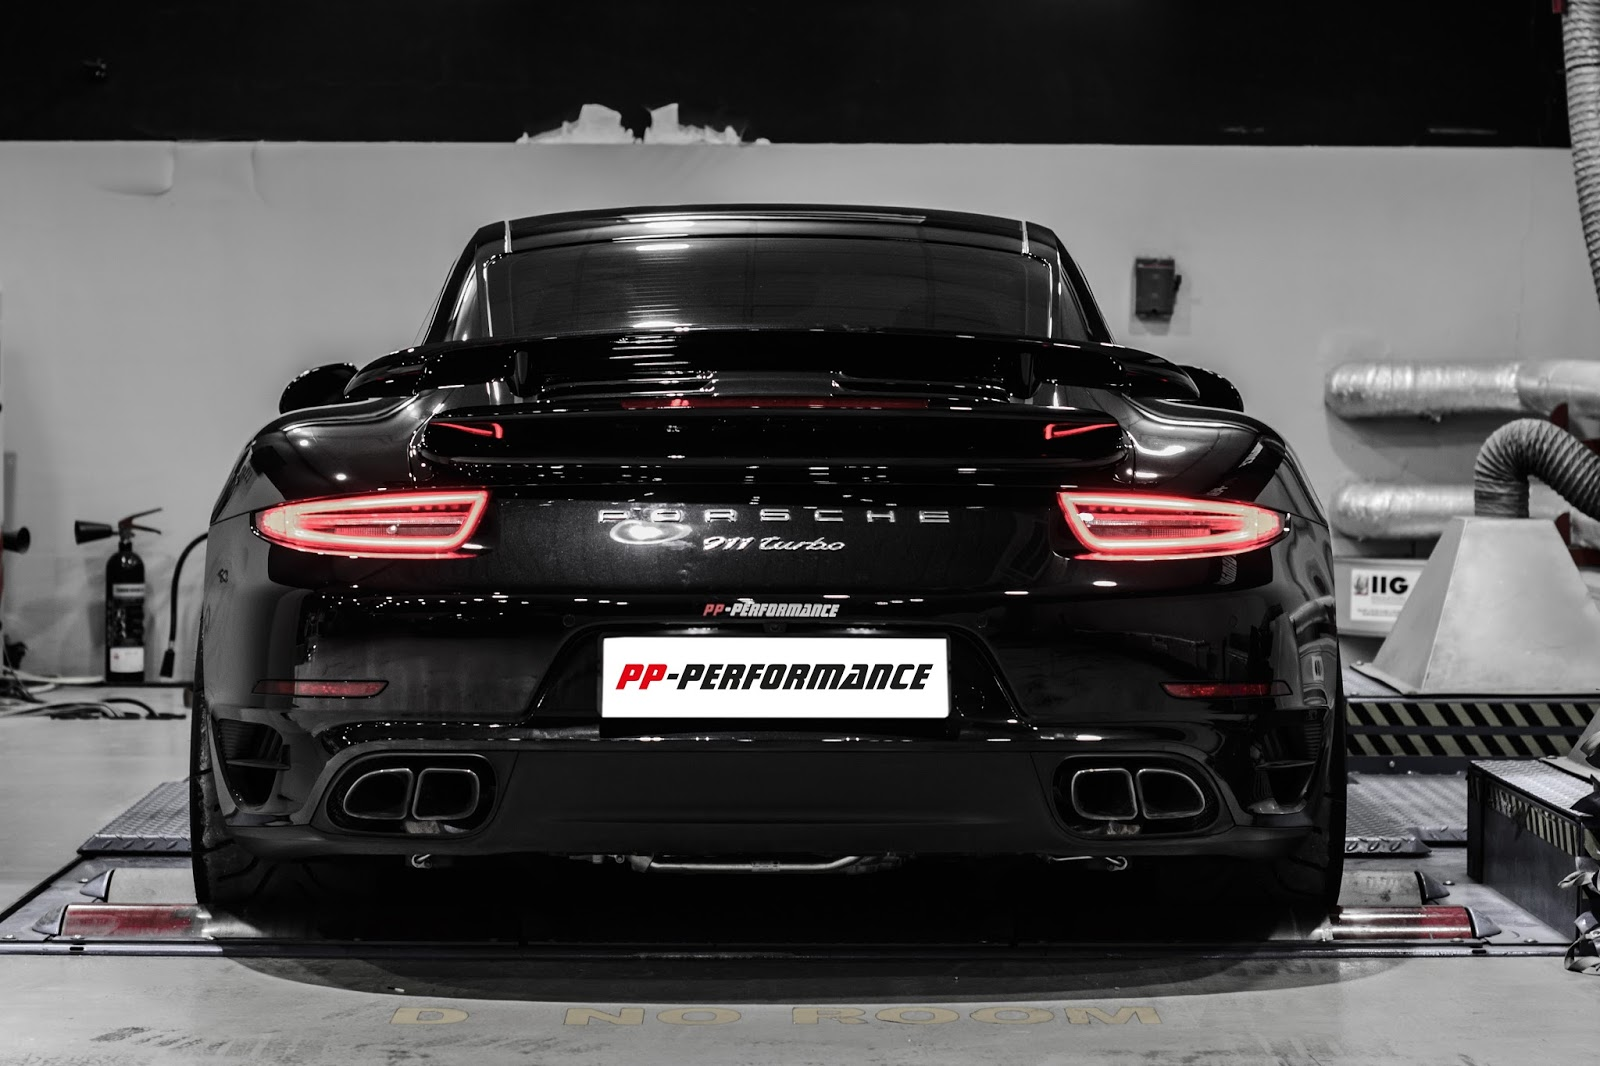 Pp Performance Tuned Porsche 991 Turbo Does 1 4 Mile In 9